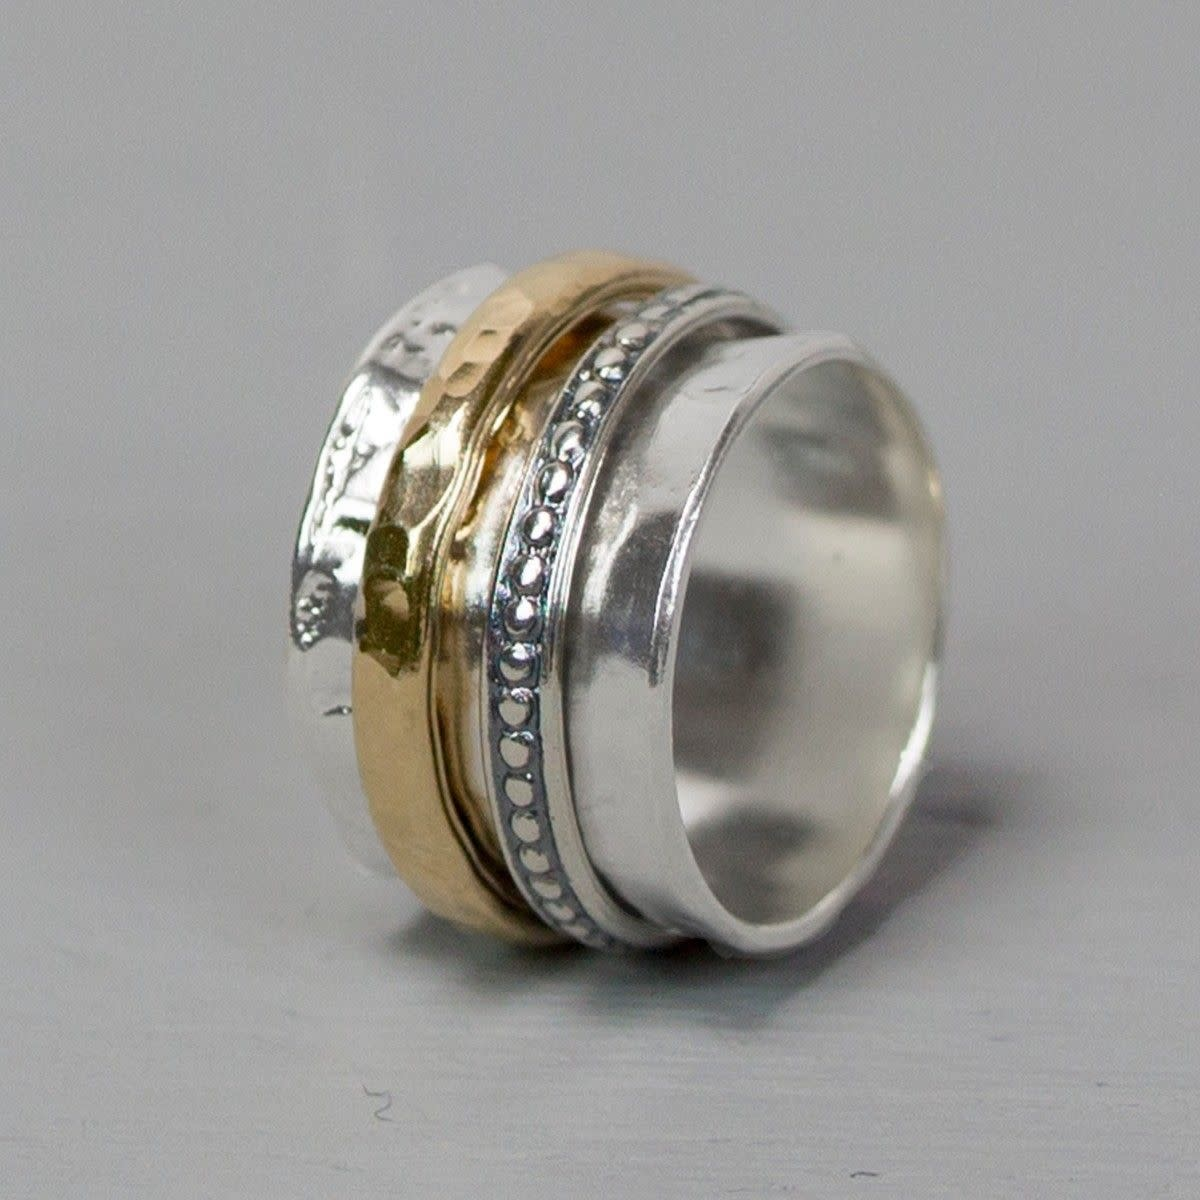 Ring Silver + Gold Filled 20099-1